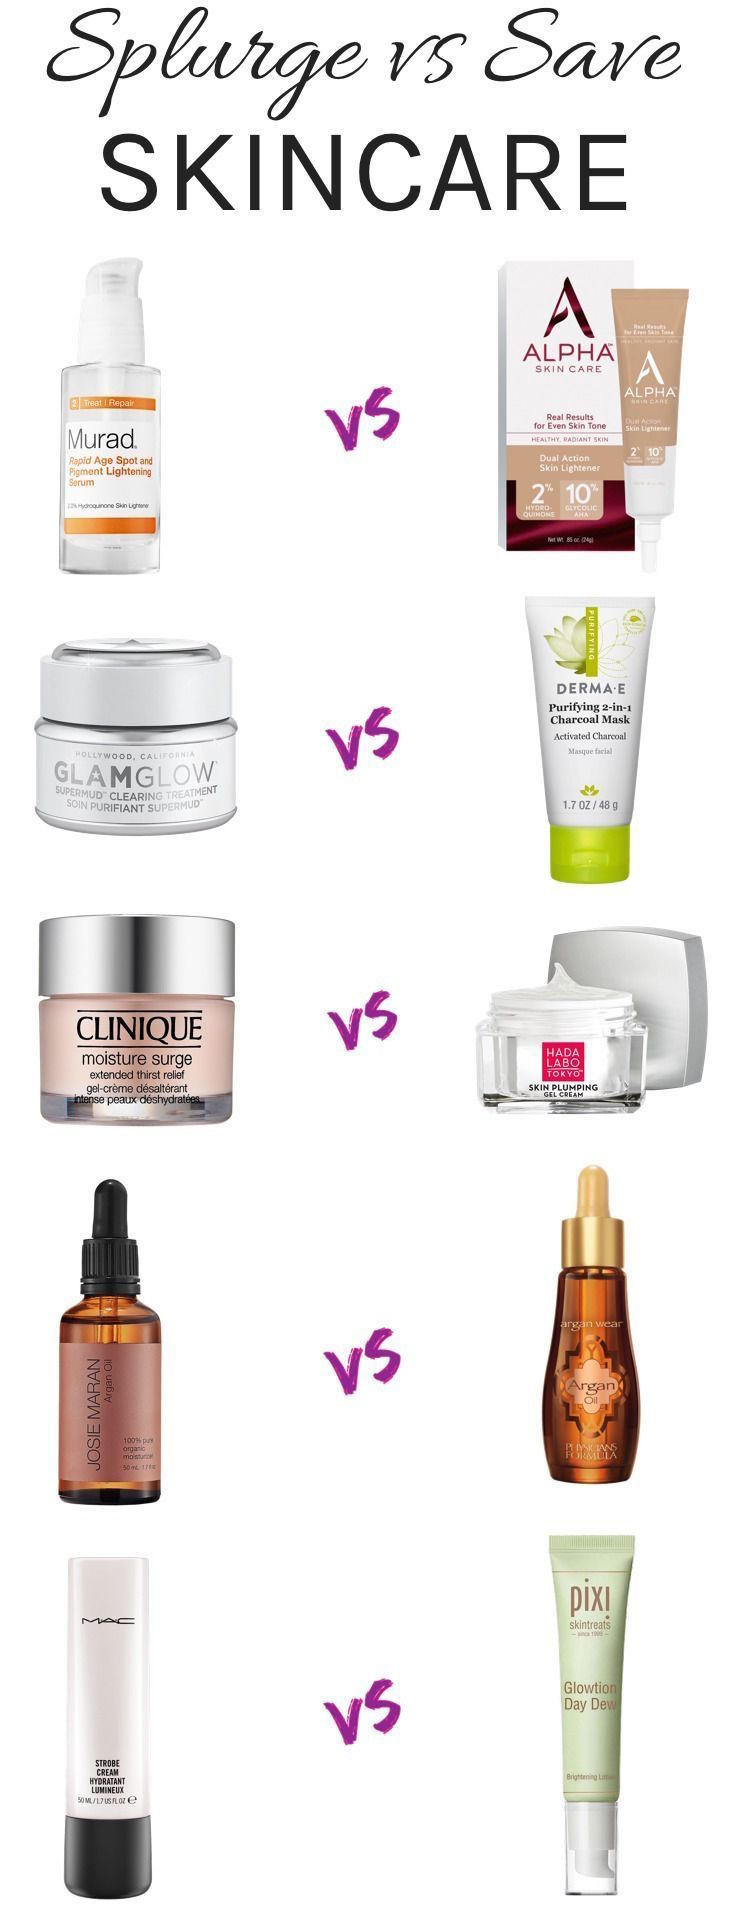 You don't need to spend a fortune to have healthy, glowing skin! Whether you're looking to protect, brighten or moisturize your skin, there's no shortage of top-notch skincare options at the drugstore. Don't miss these affordable alternatives for high-end skincare products that work just as well as their pricey counterparts! With these skincare dupes, you can have a great skincare routine even on a shoestring beauty budget!: